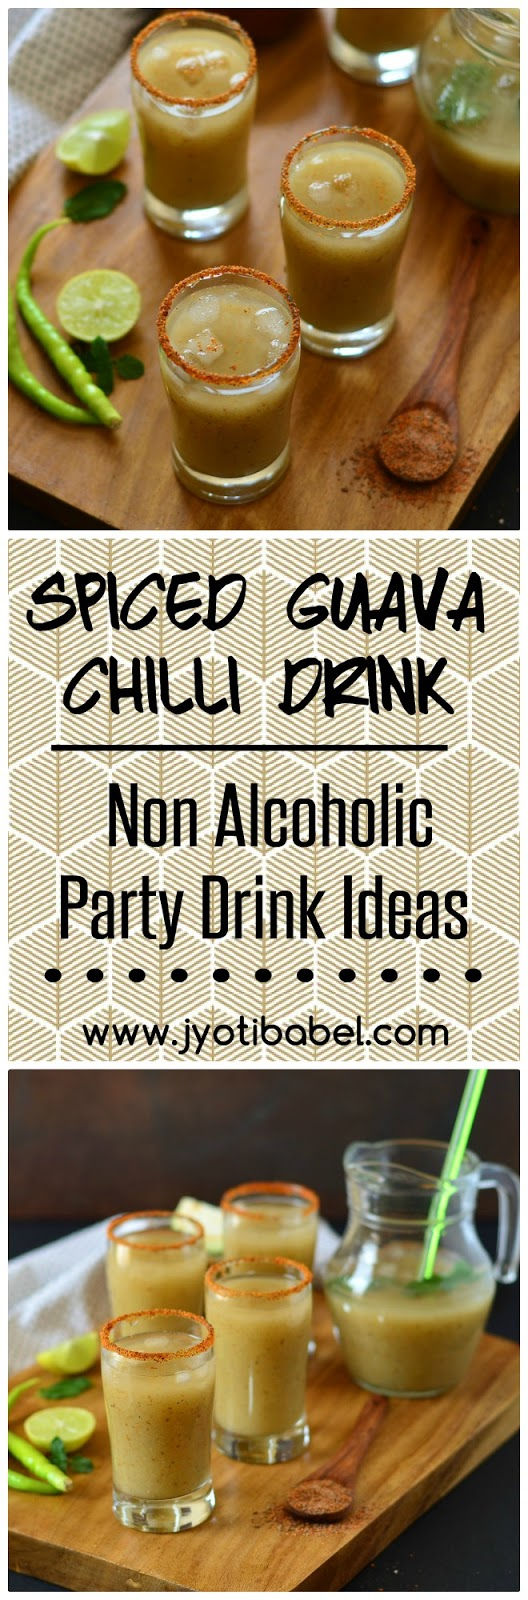 Spiced Guava Chilli Drink Recipe | Guava Chilli Mocktail Recipe. If you are looking for a summer drink recipe with Indian flavours, this spiced guava chilli drink will fit the bill perfectly.